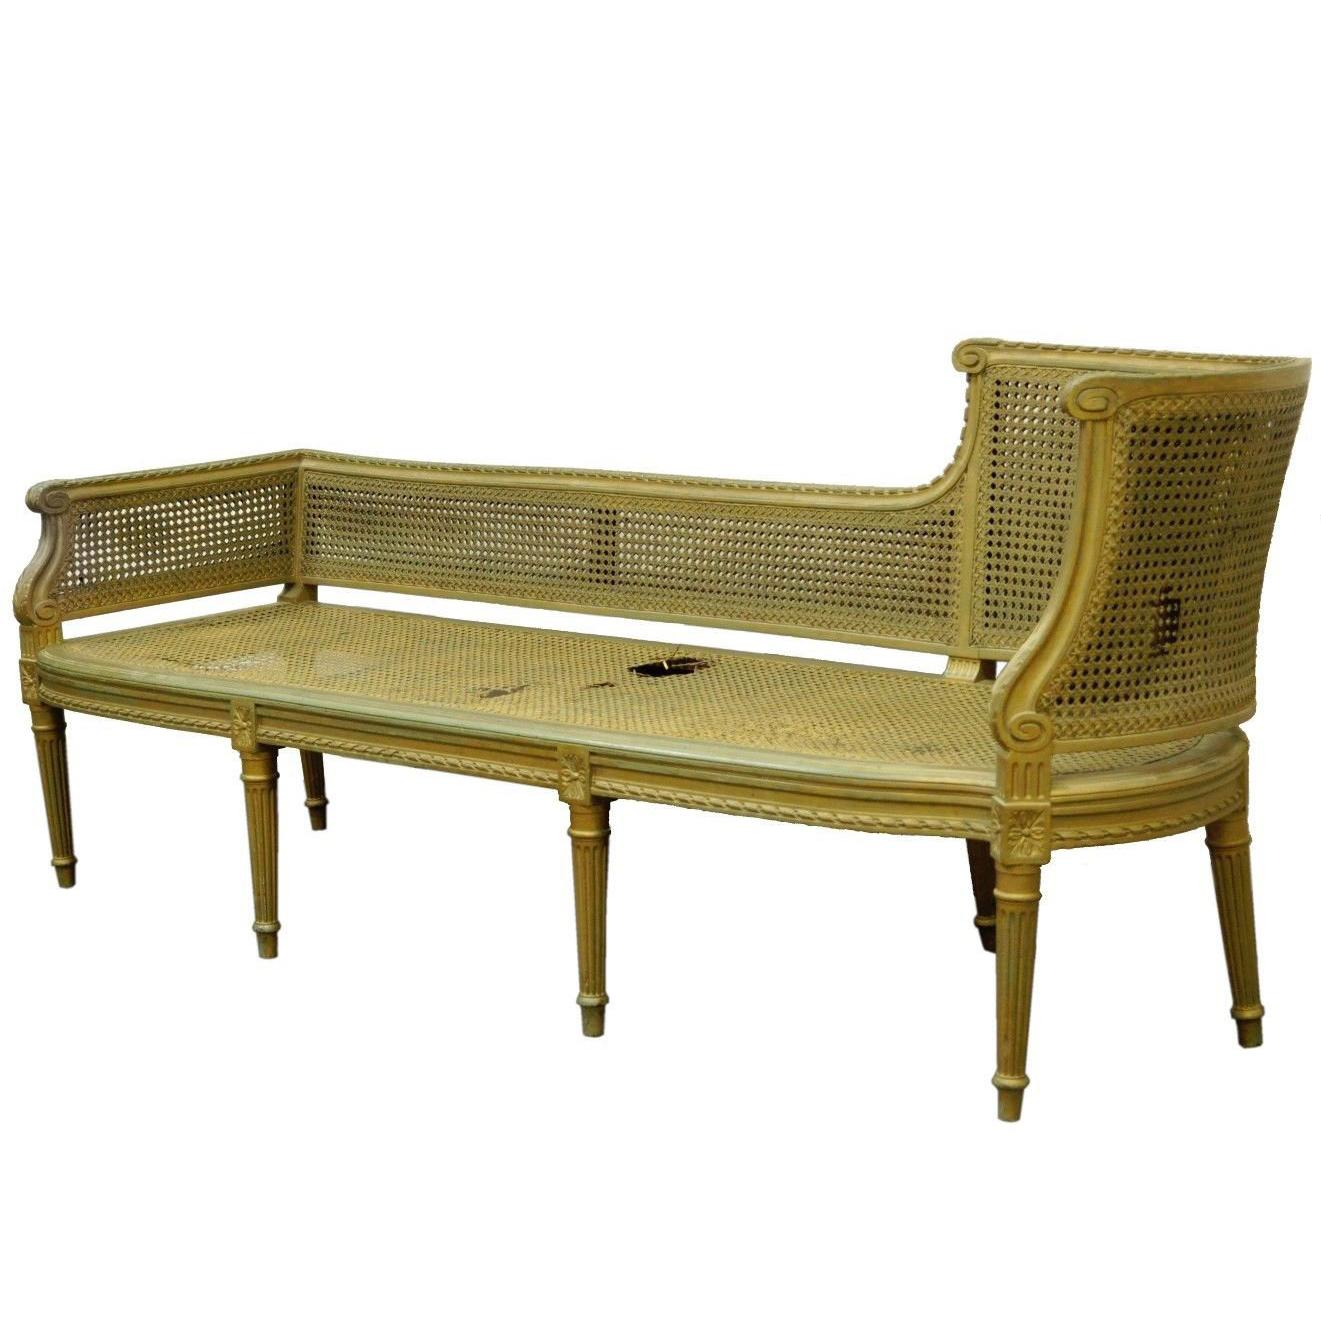 Chaise Style Antique French Louis Xvi Style Caned Chaise Lounge Recamier Fainting Couch Sofa